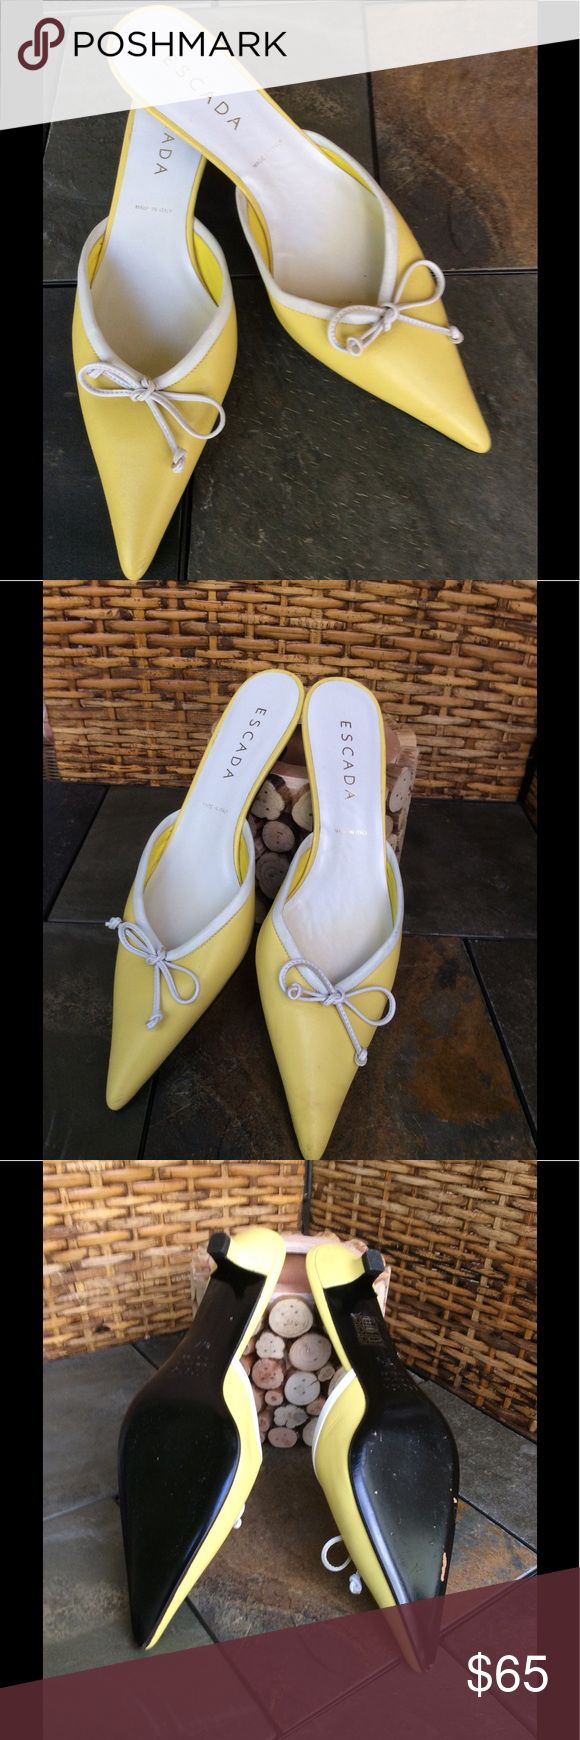 GORGEOUS ESCADA ITALIAN LEATHER SHOES WITH BOW  THESE DESIGNER GORGEOUS ITALIAN LEATHER SHOES ARE TO DIE FOR. SLIP THEM ON AND BE STYLISH AND COMFORTABLE. MADE IN ITALY.  LOVELY YELLOW WITH SOME WHITE TRIM AND A WHITE BOW. YOU ARE GOING TO LOVE ❤️ THESE SHOES. ESCADA Shoes Heels